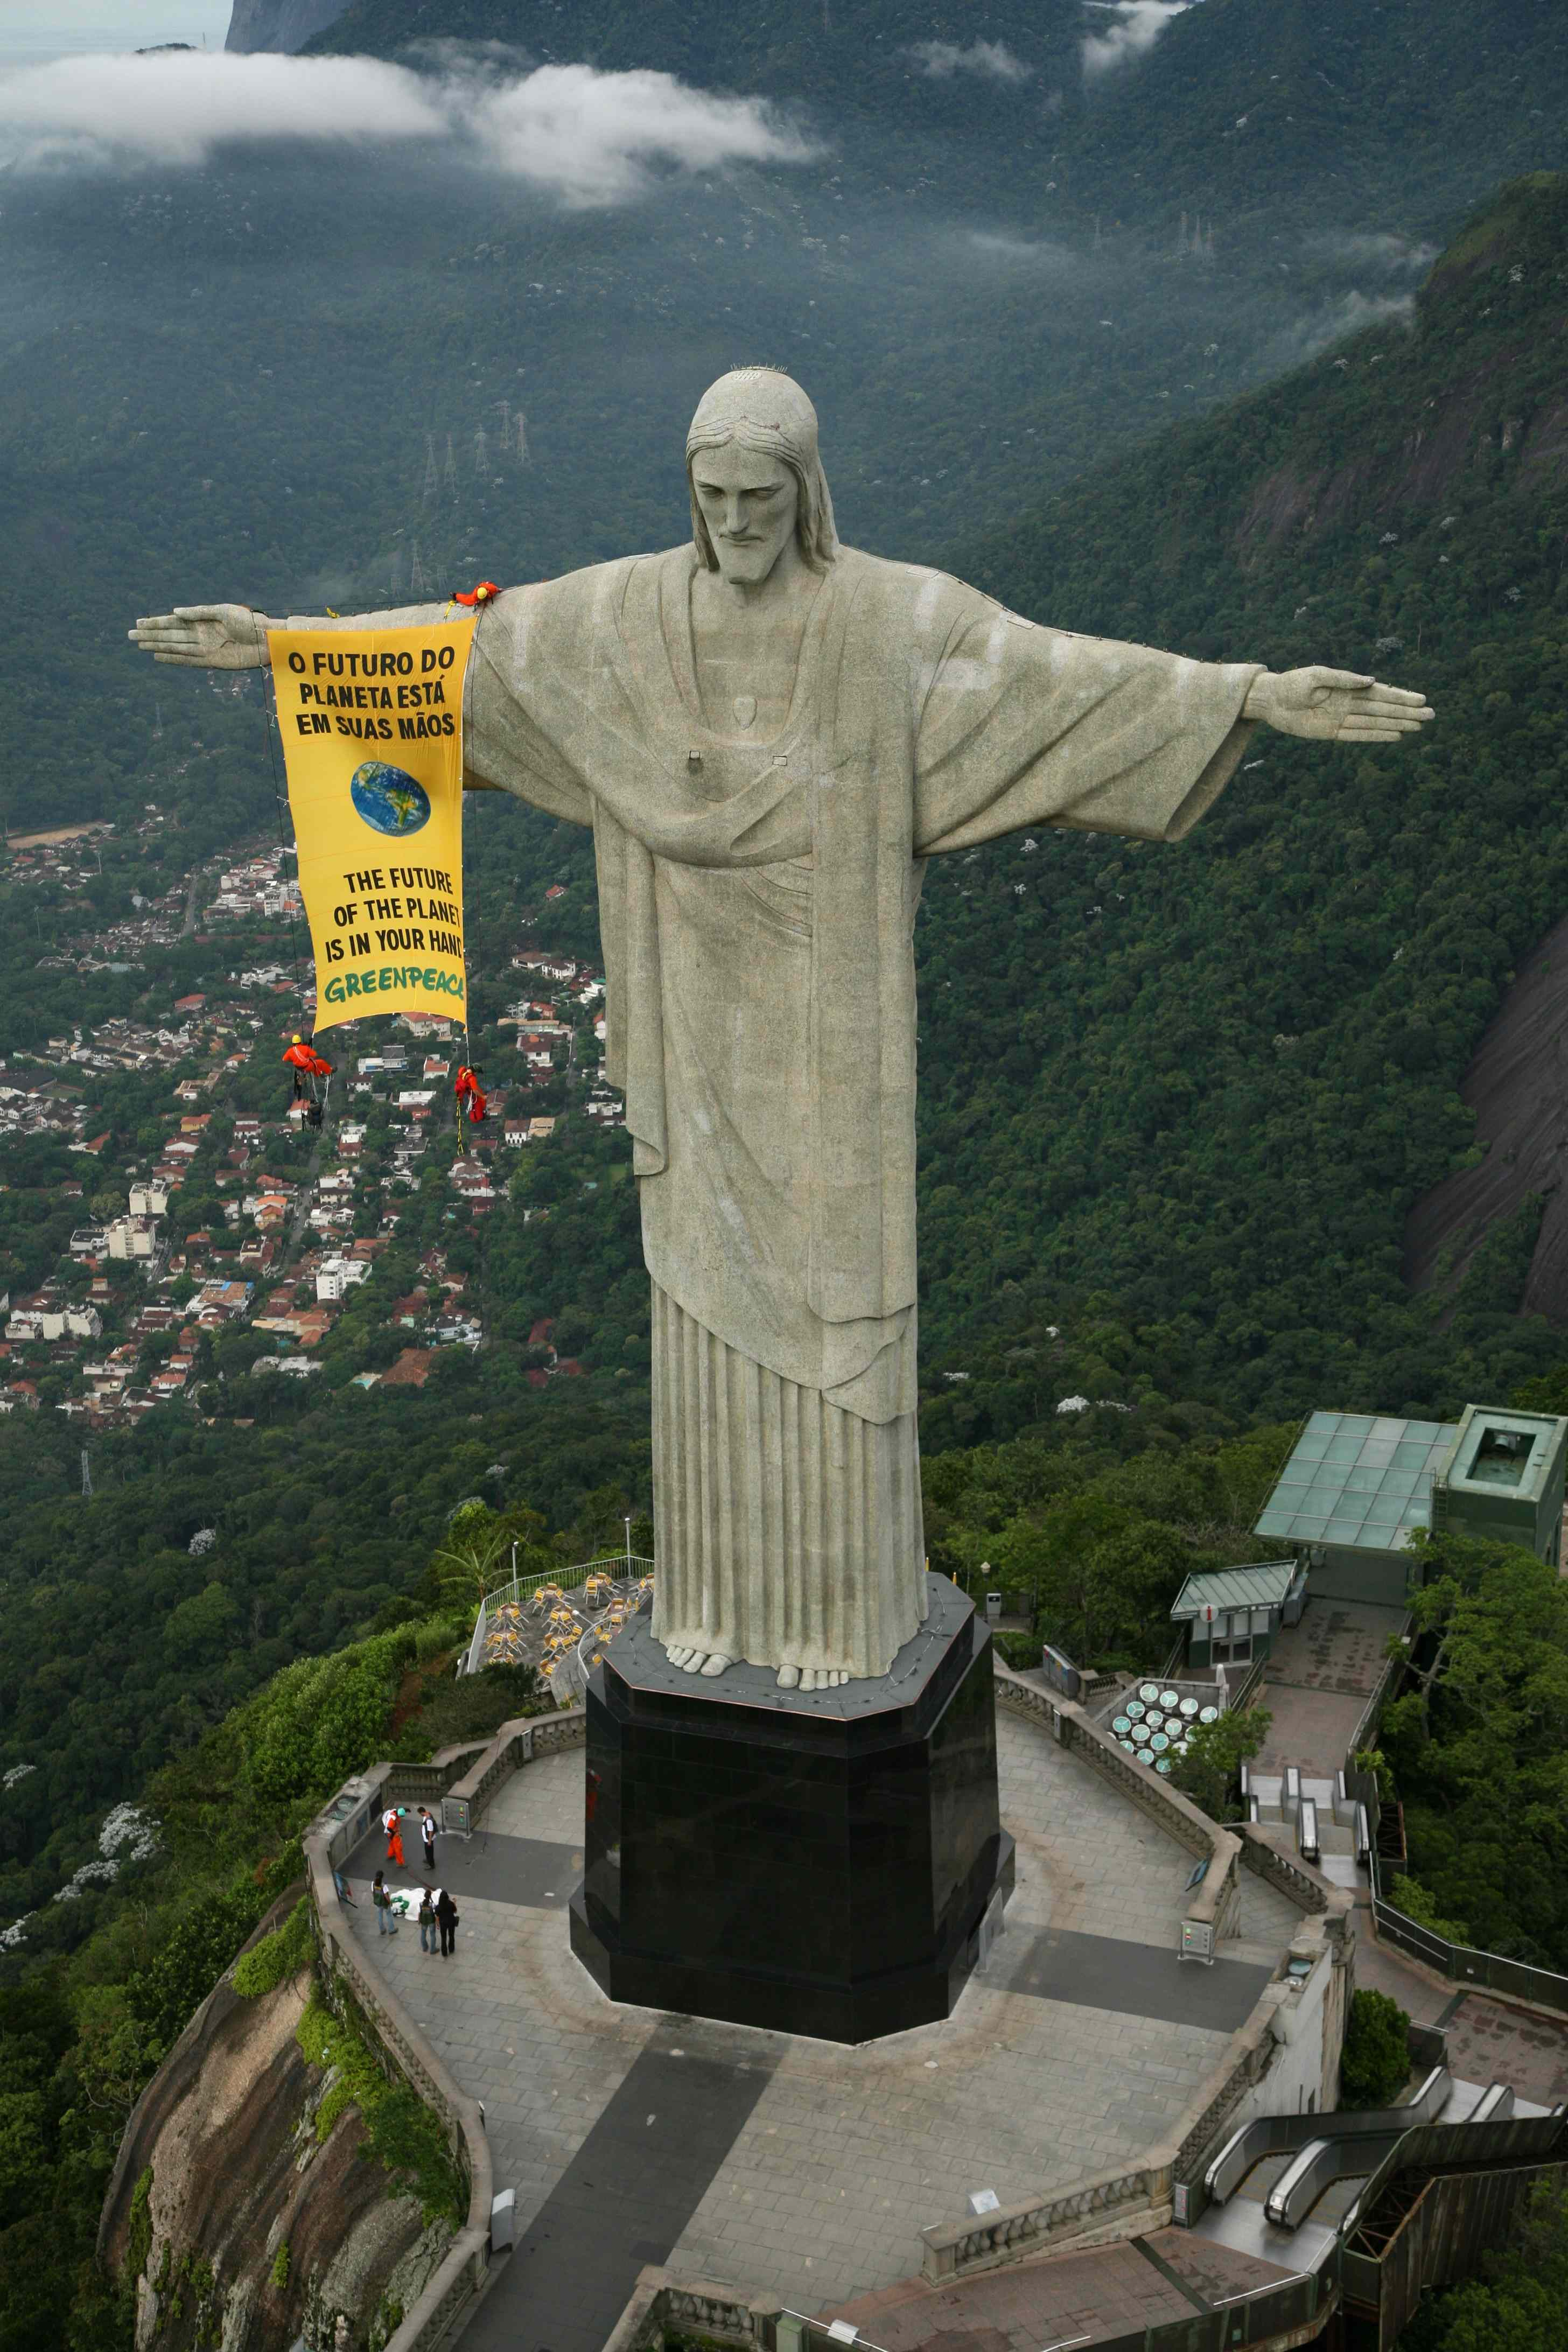 Greenpeace axtivists unfurl a banner from the Christ the Redeemer statue